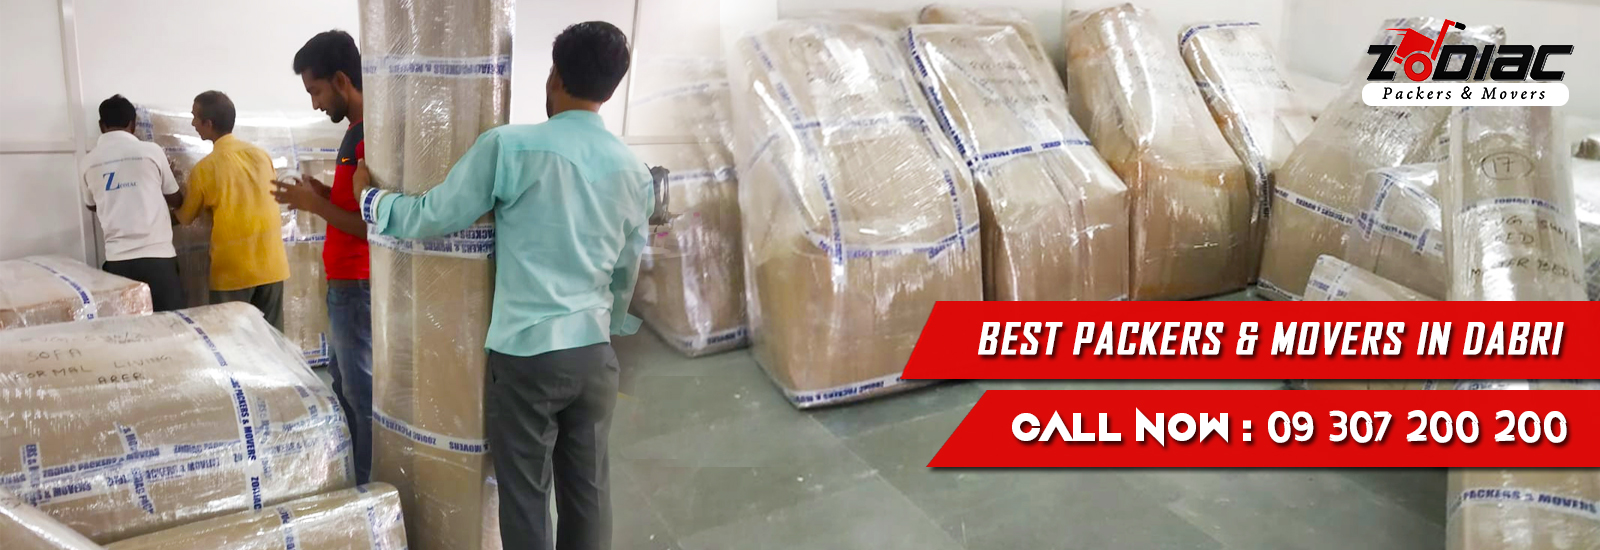 Packers and Movers in Dabri